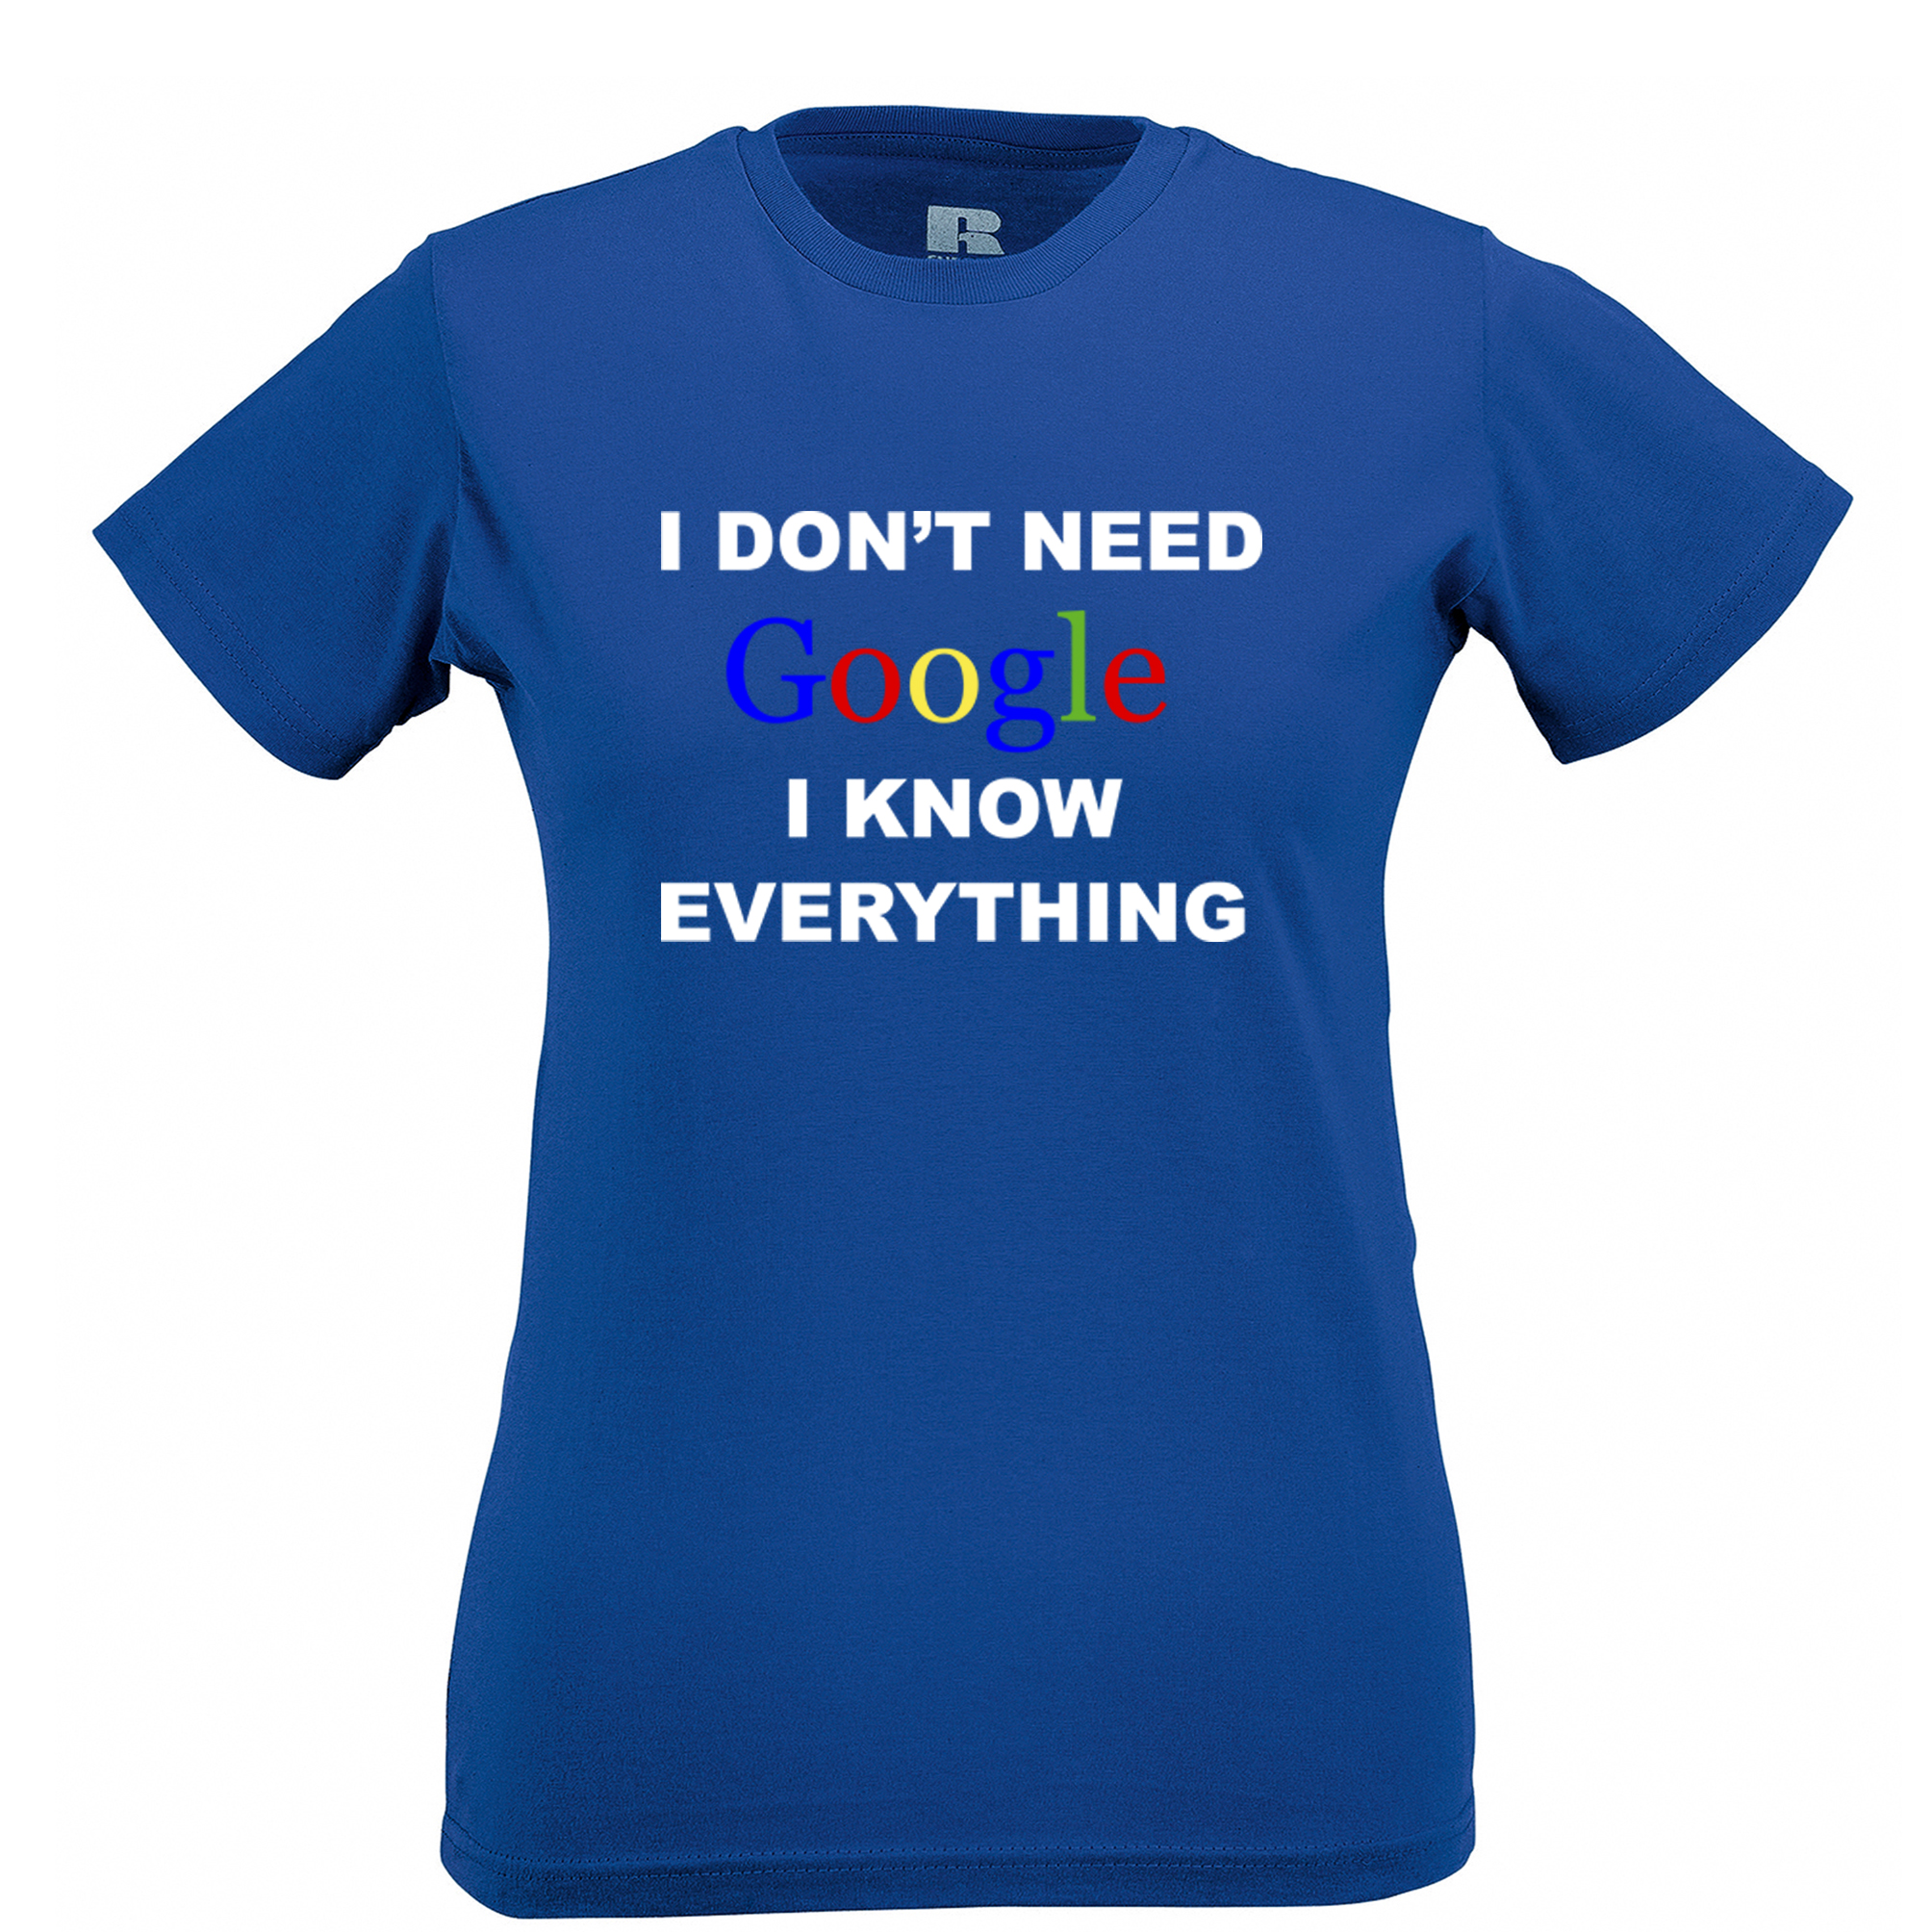 online buy wholesale google t shirt from china google t